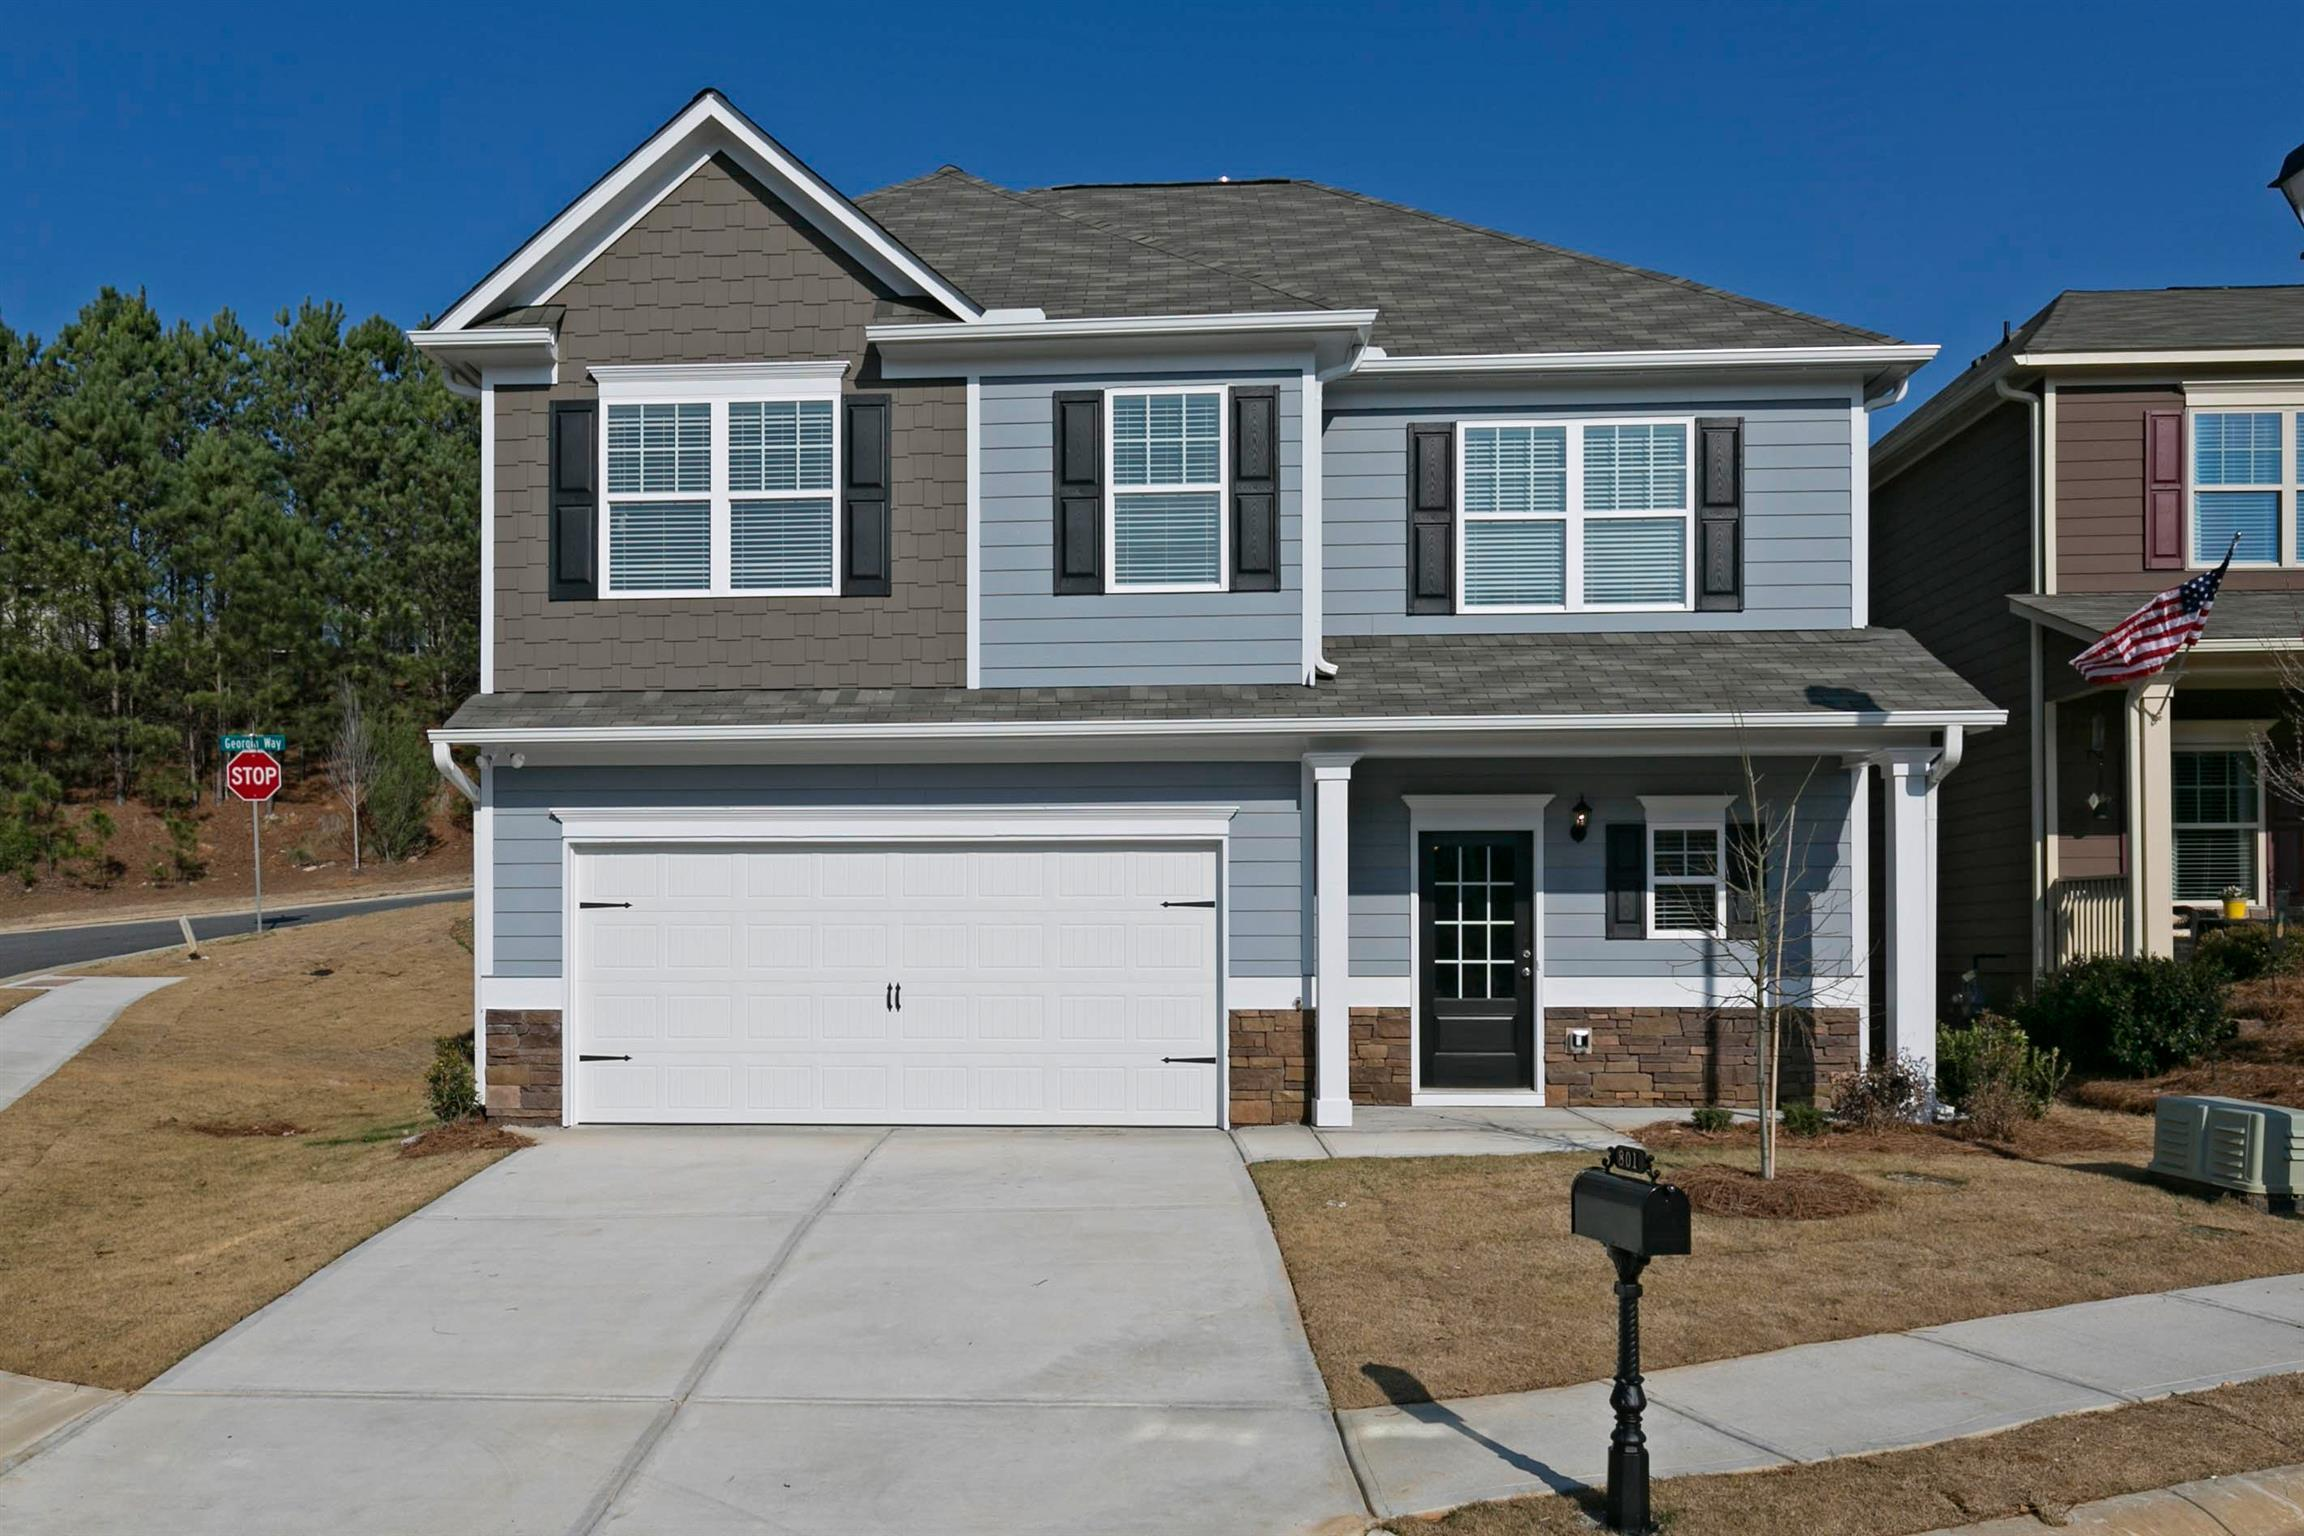 2918 Timewinder Way 38401 - One of Columbia Homes for Sale